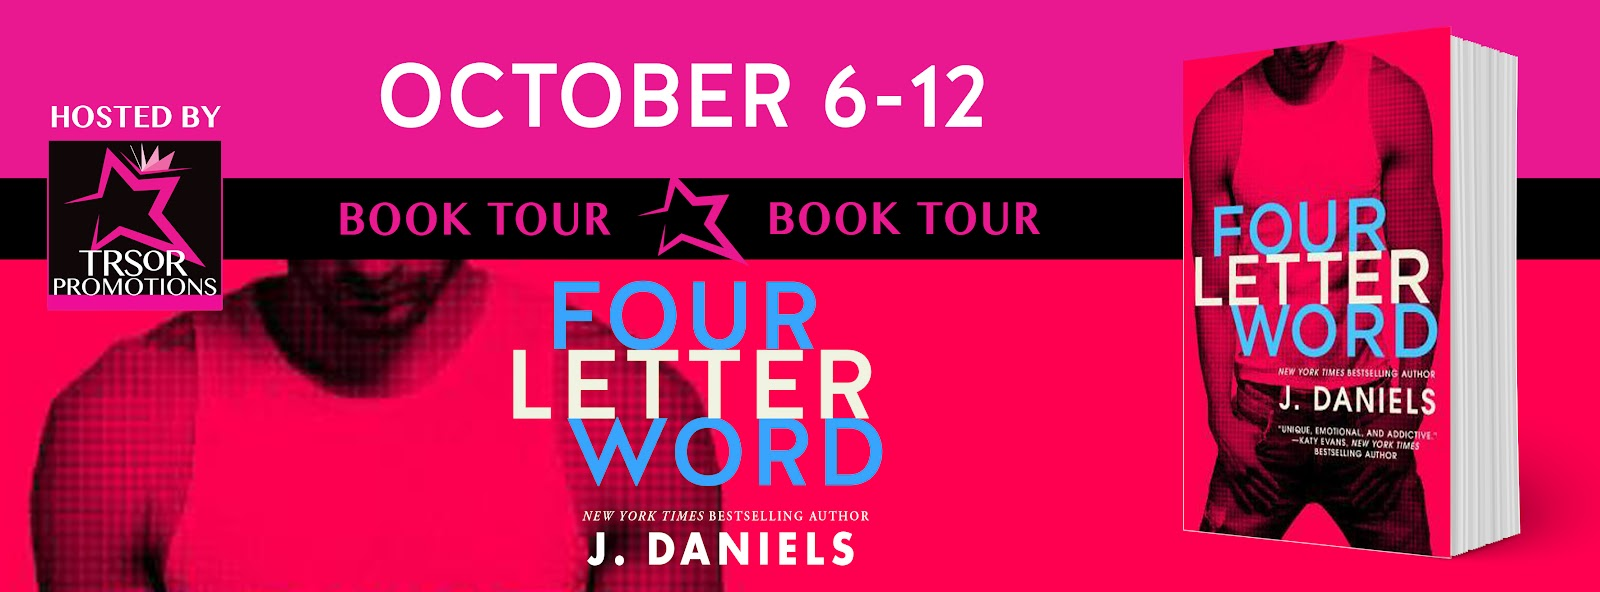 FOUR_LETTER WORD_BOOK_TOUR.jpg